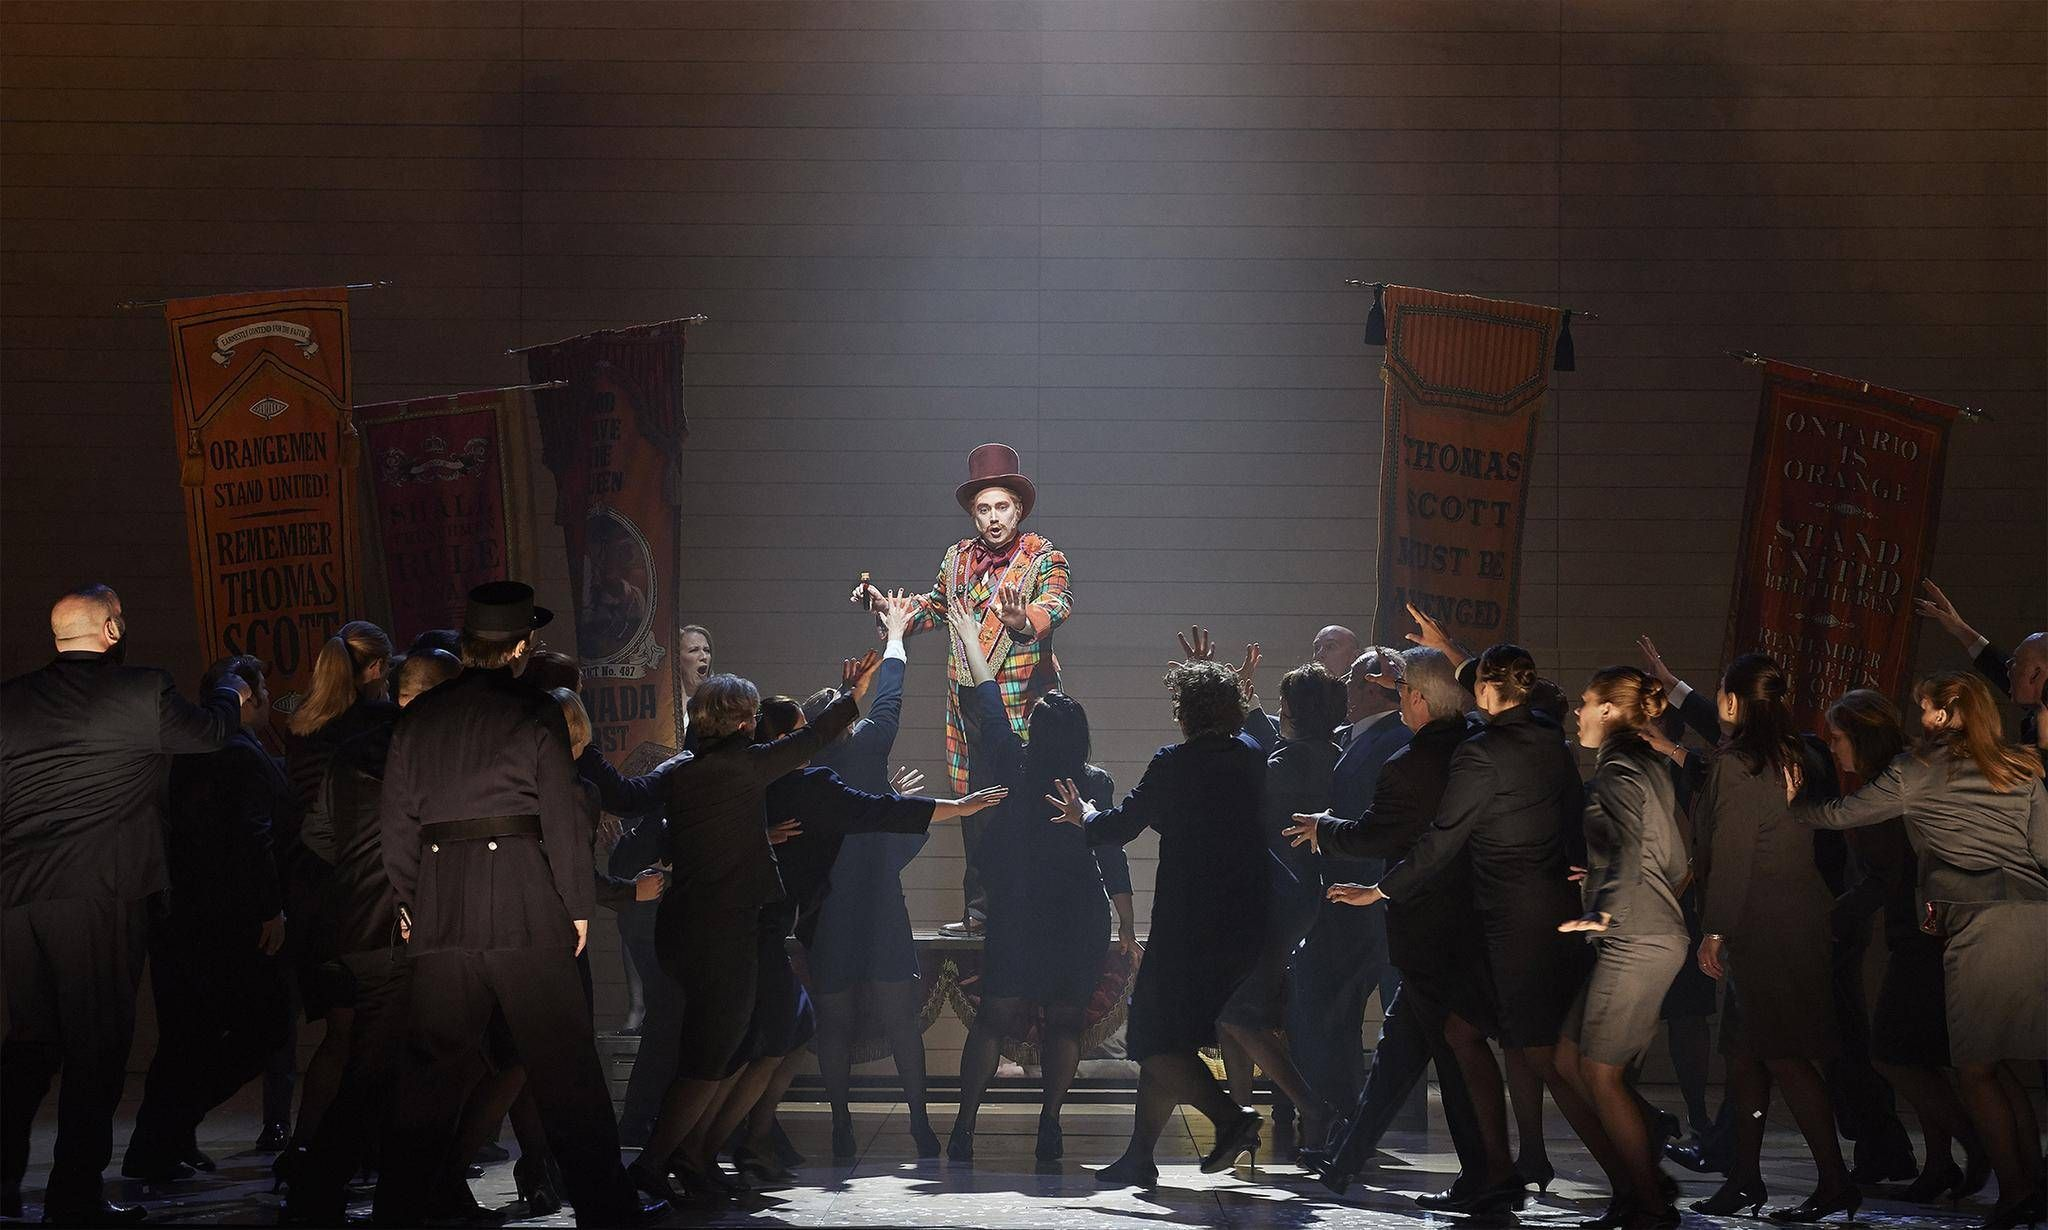 Louis Riel, Canadian Opera Company.Directed by Peter Hinton. Set Design by Michael Gianfrancesco, Costumes by Gillian Gallow, Lighting Design by Bonnie Beecher. Photo by Michael Cooper.